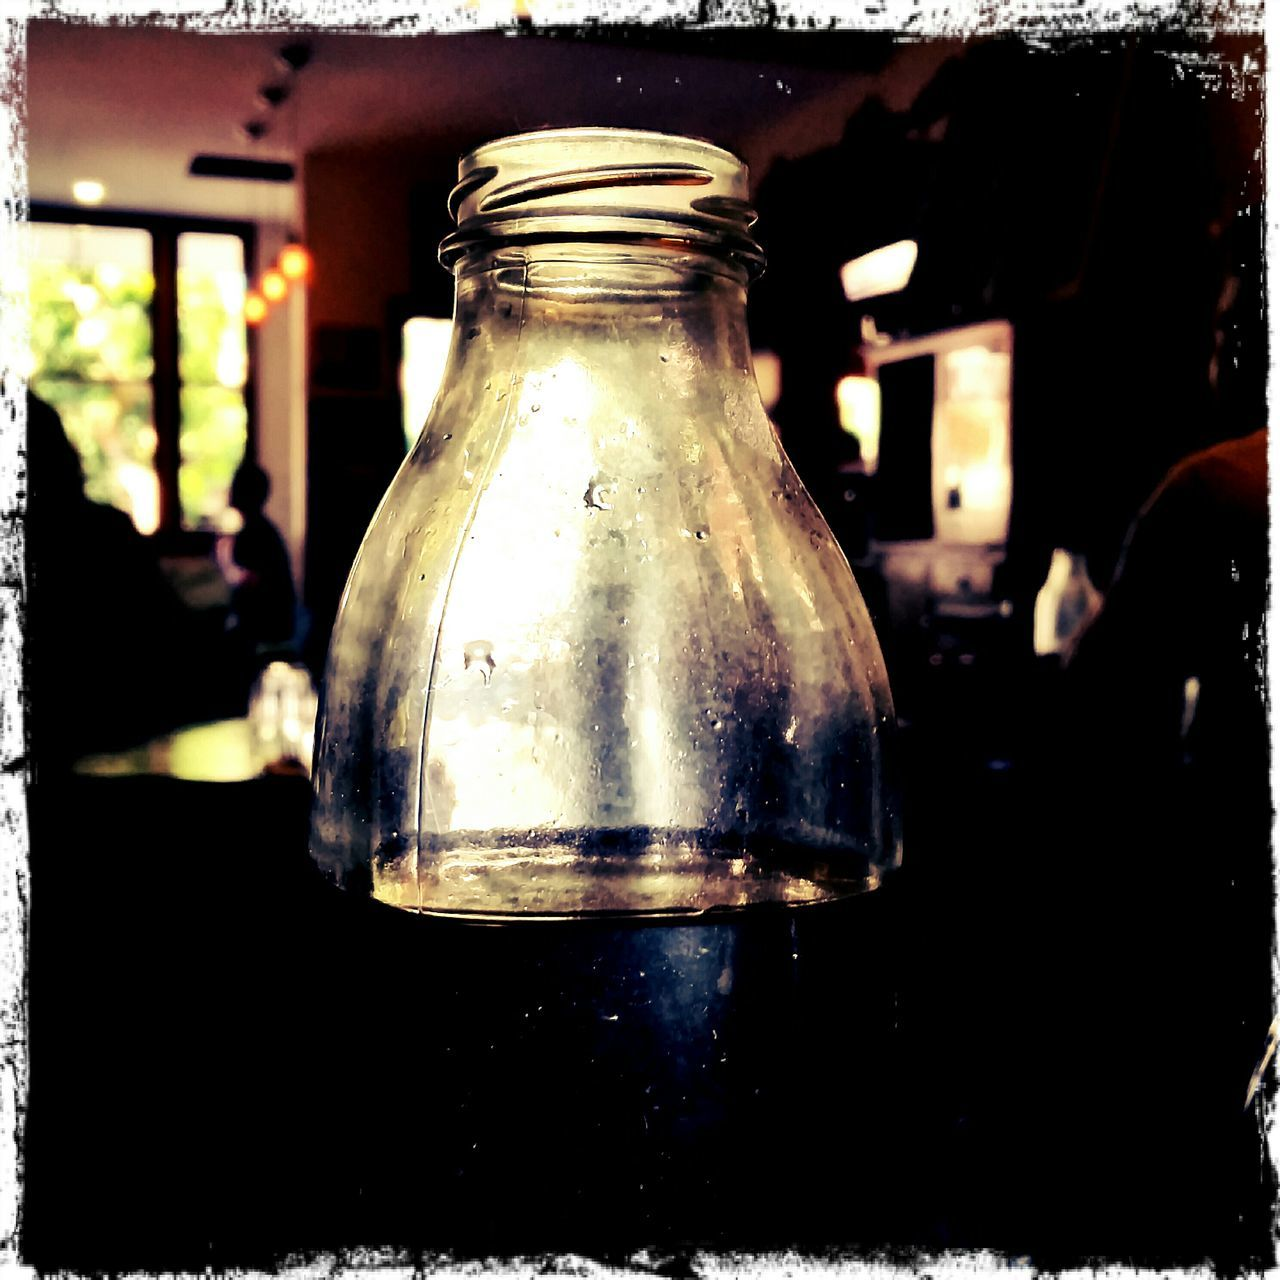 jar, table, bottle, focus on foreground, indoors, close-up, no people, day